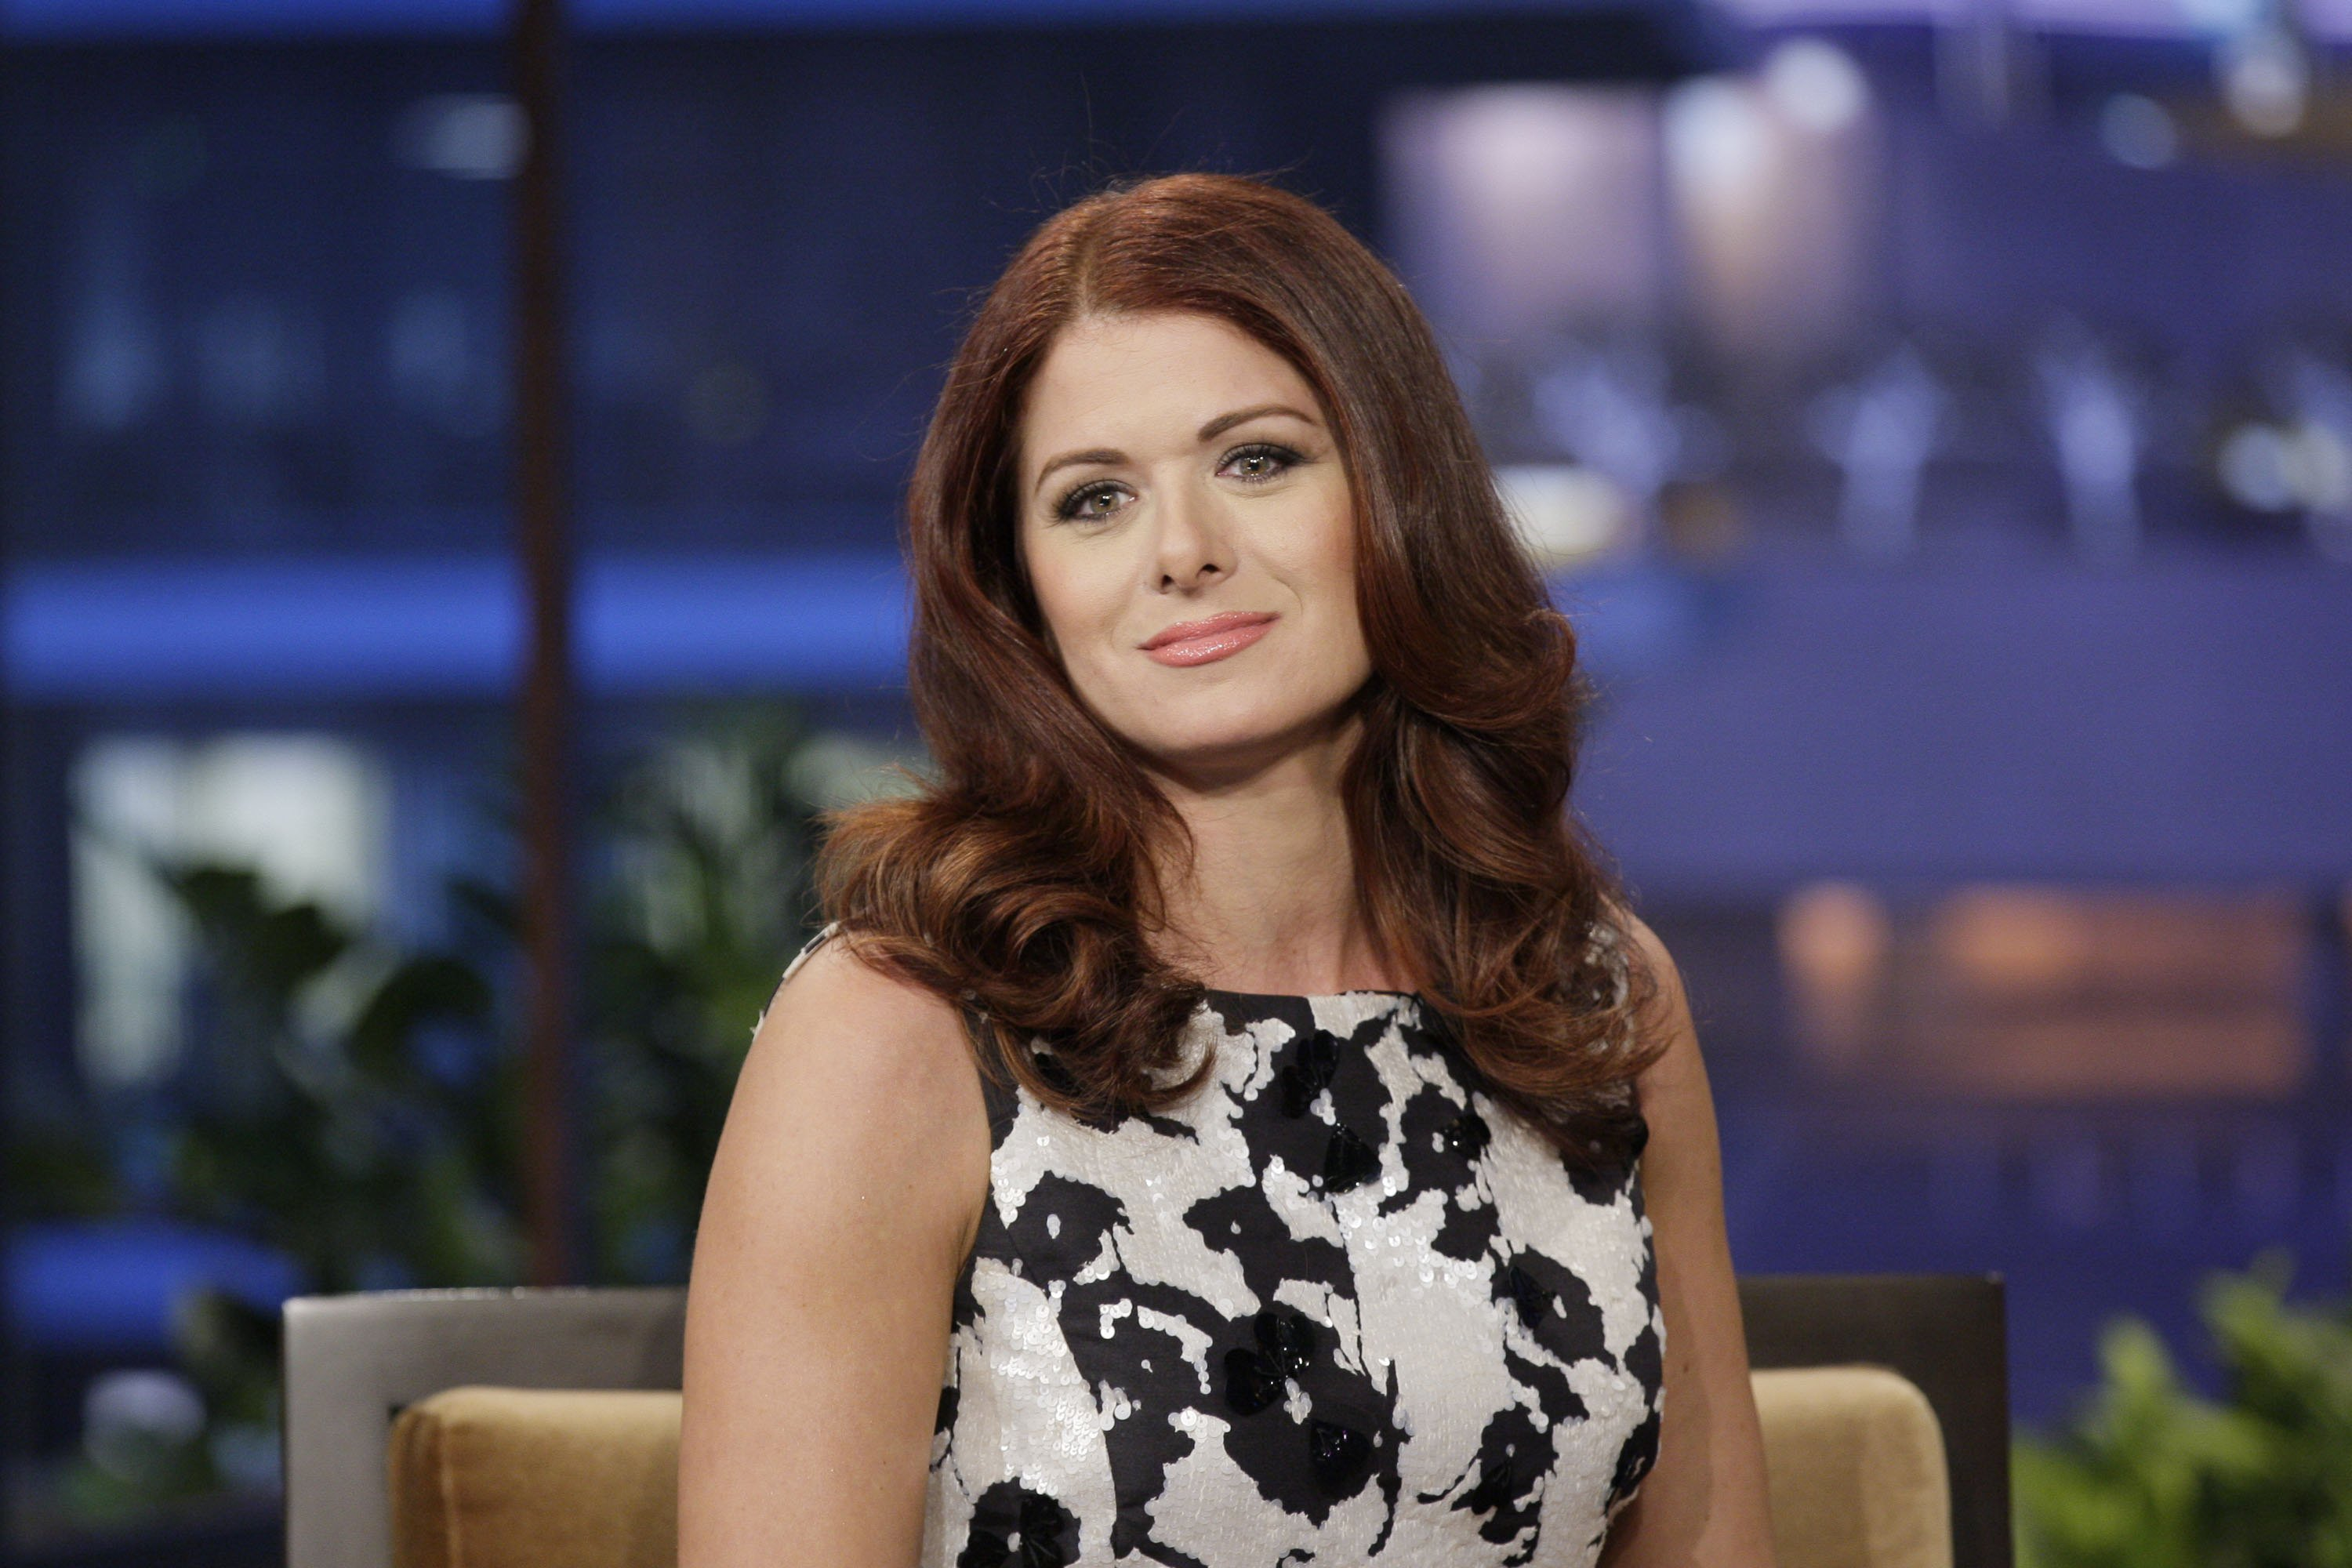 Image Source: Getty Images| Debra Messing in an interview